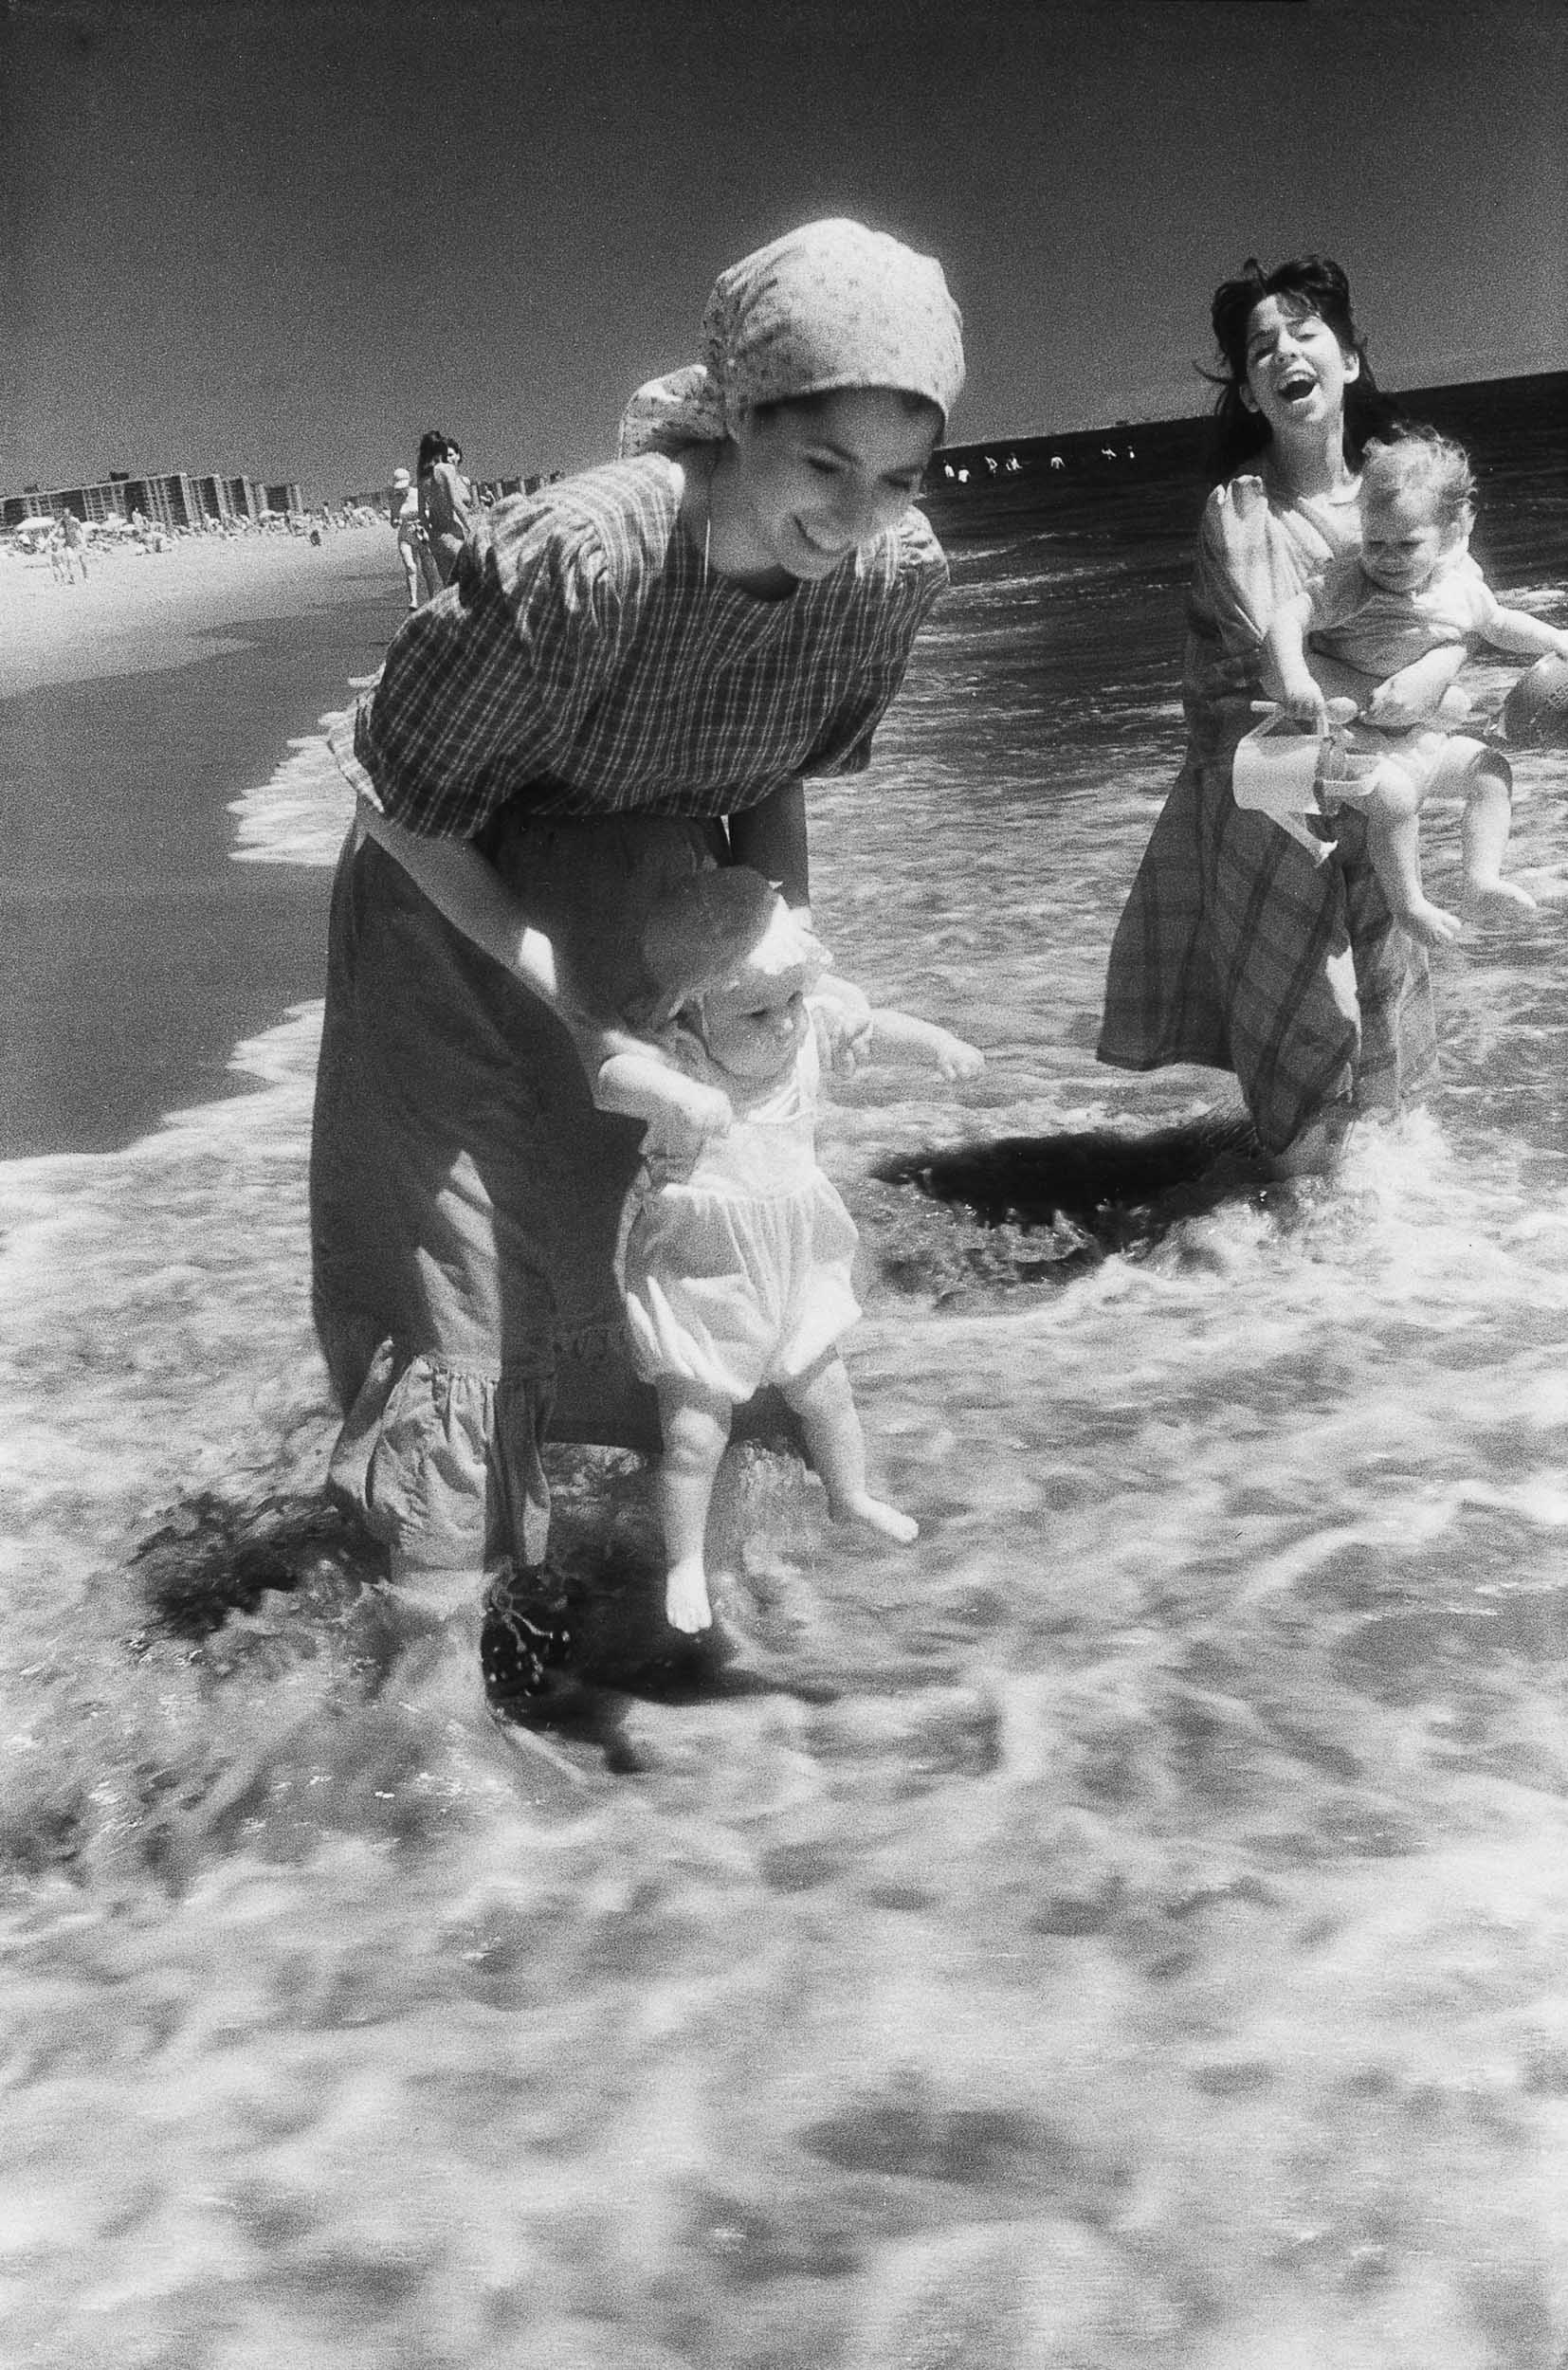 Barbara Alper- Photo of orthodox women holding babies in the water at Rockaway Beach NYC